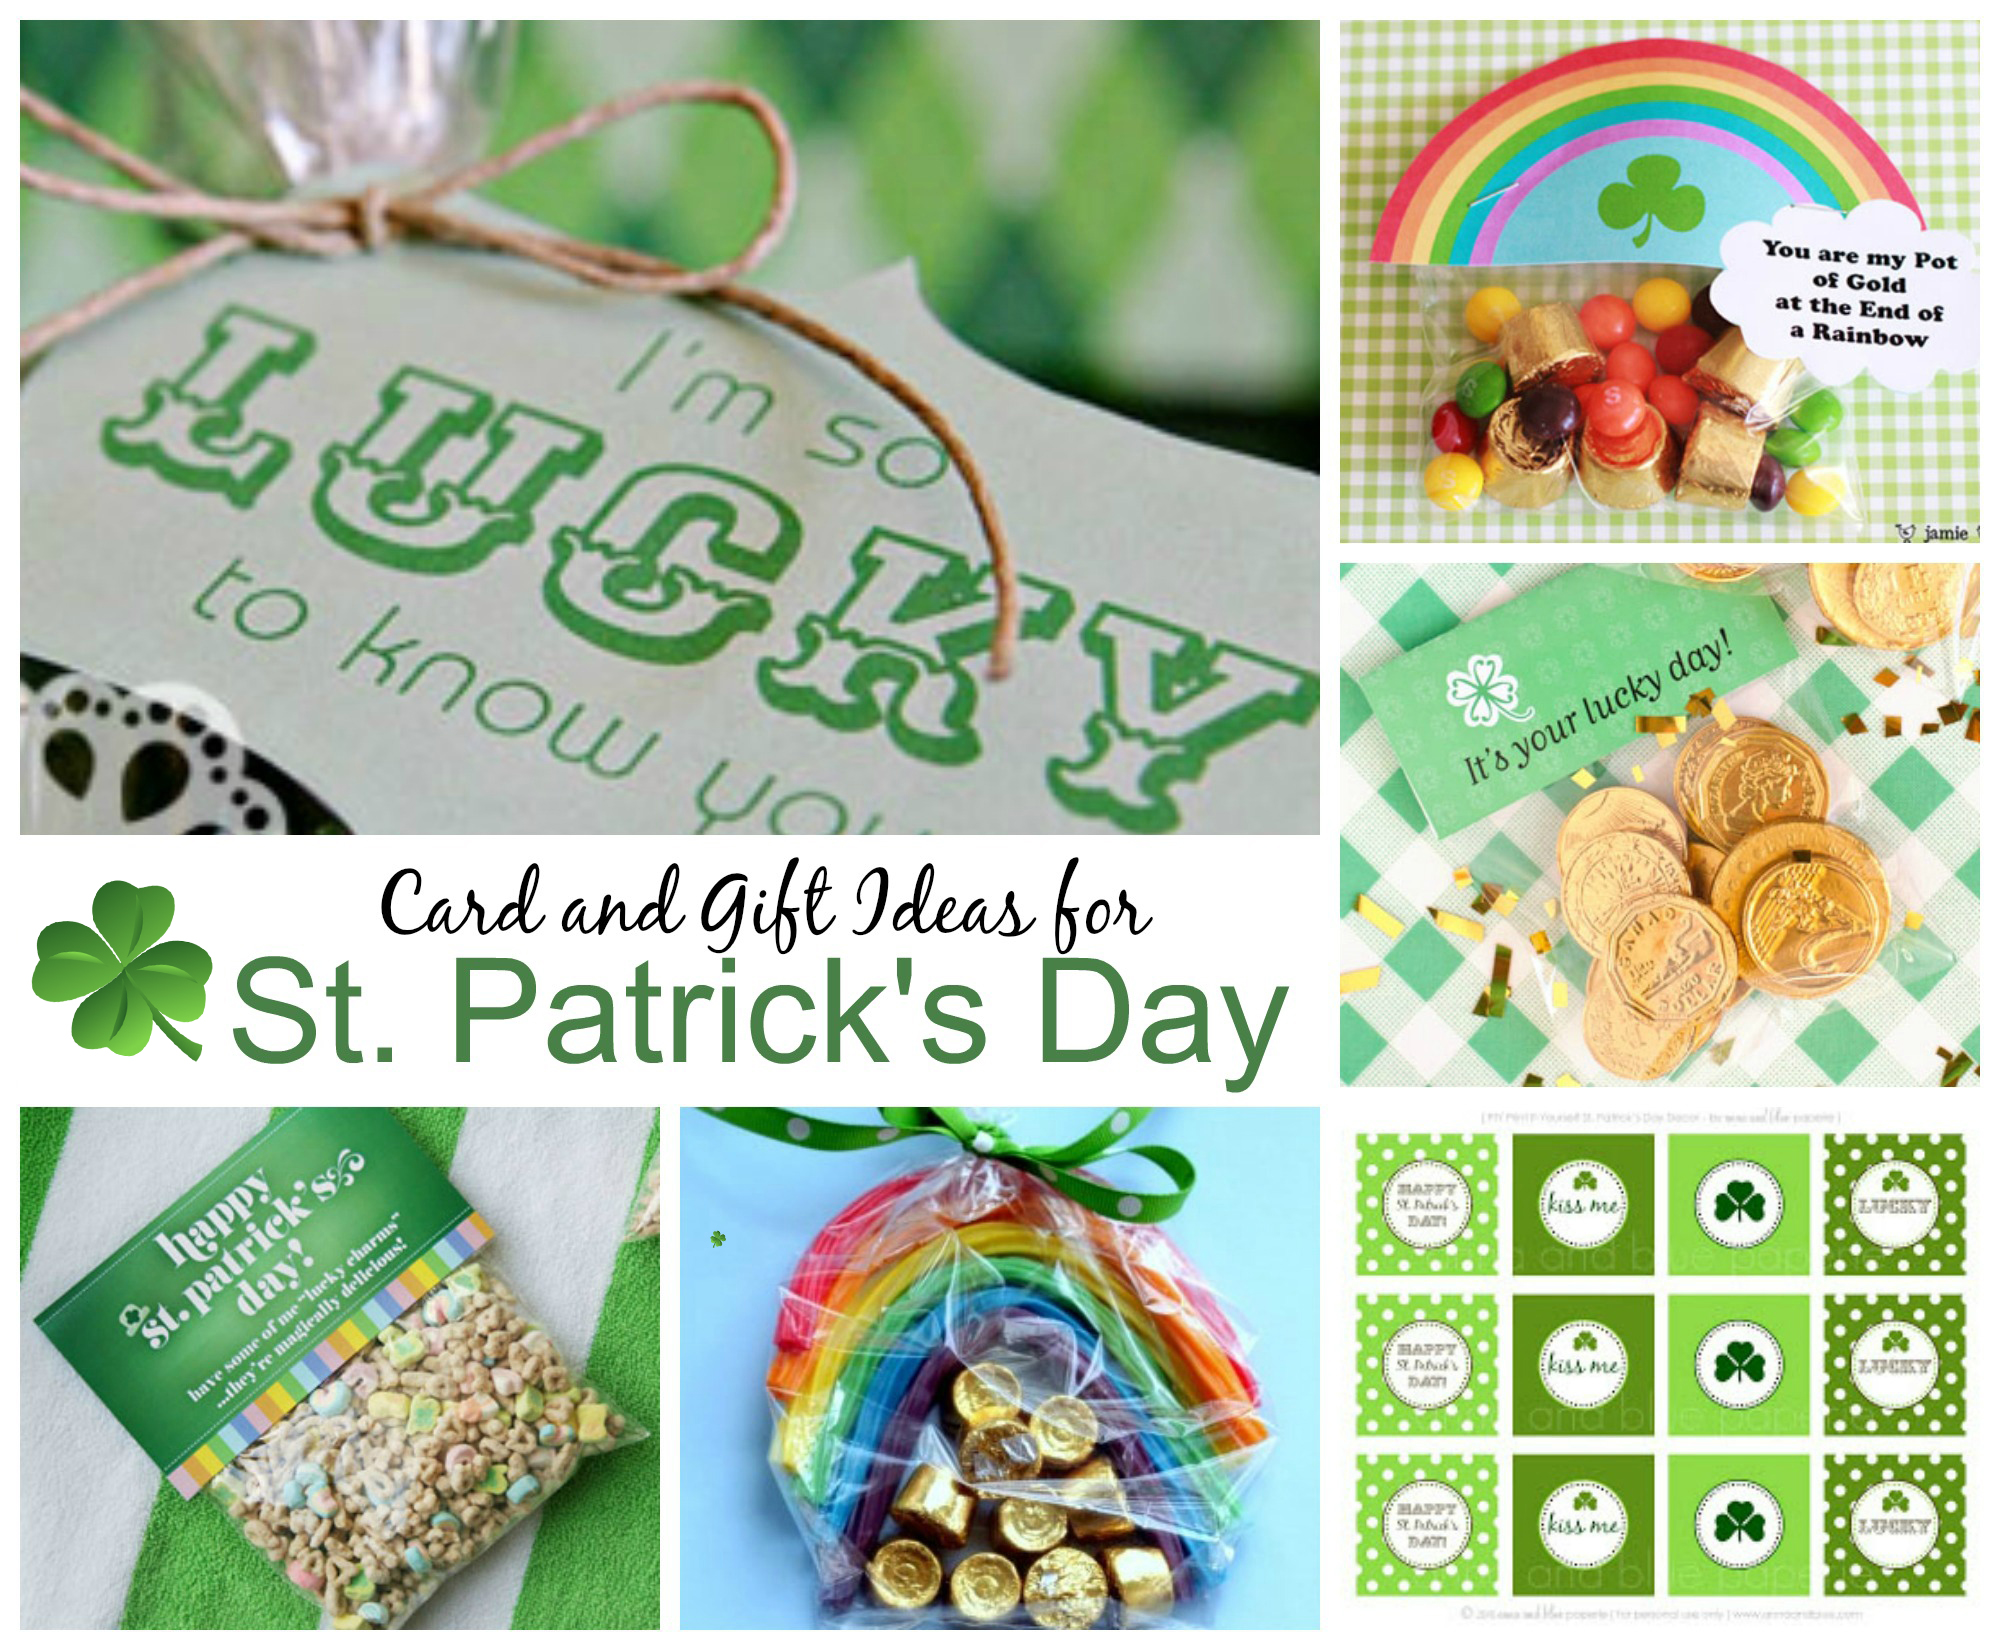 Saint Patrick's Day Card and Gift Ideas